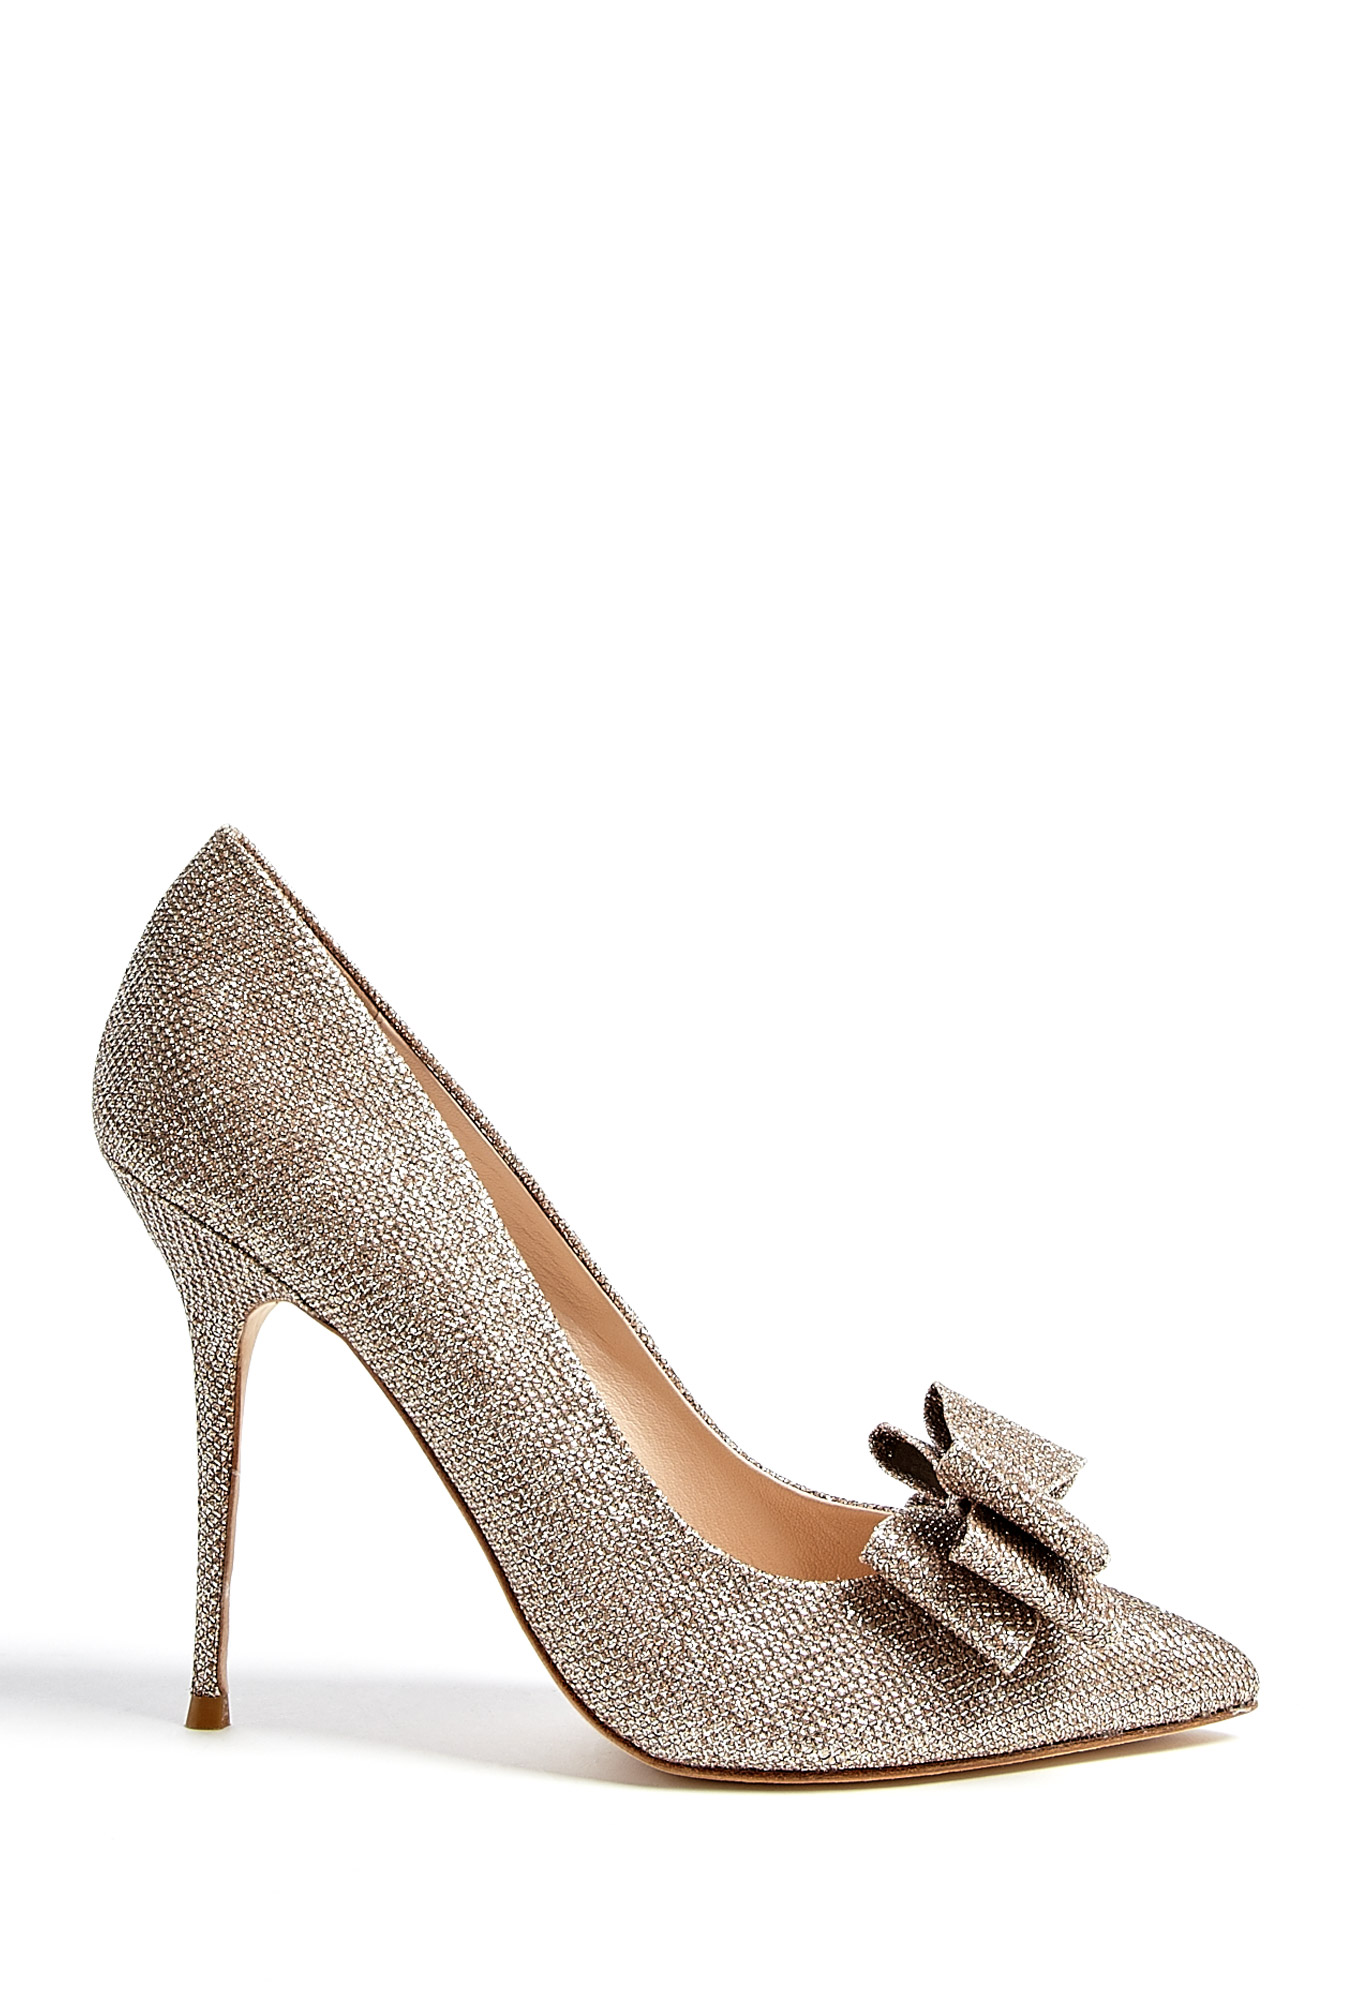 Lucy Choi London Taupe Rose High Heel Shoe With Large Bow